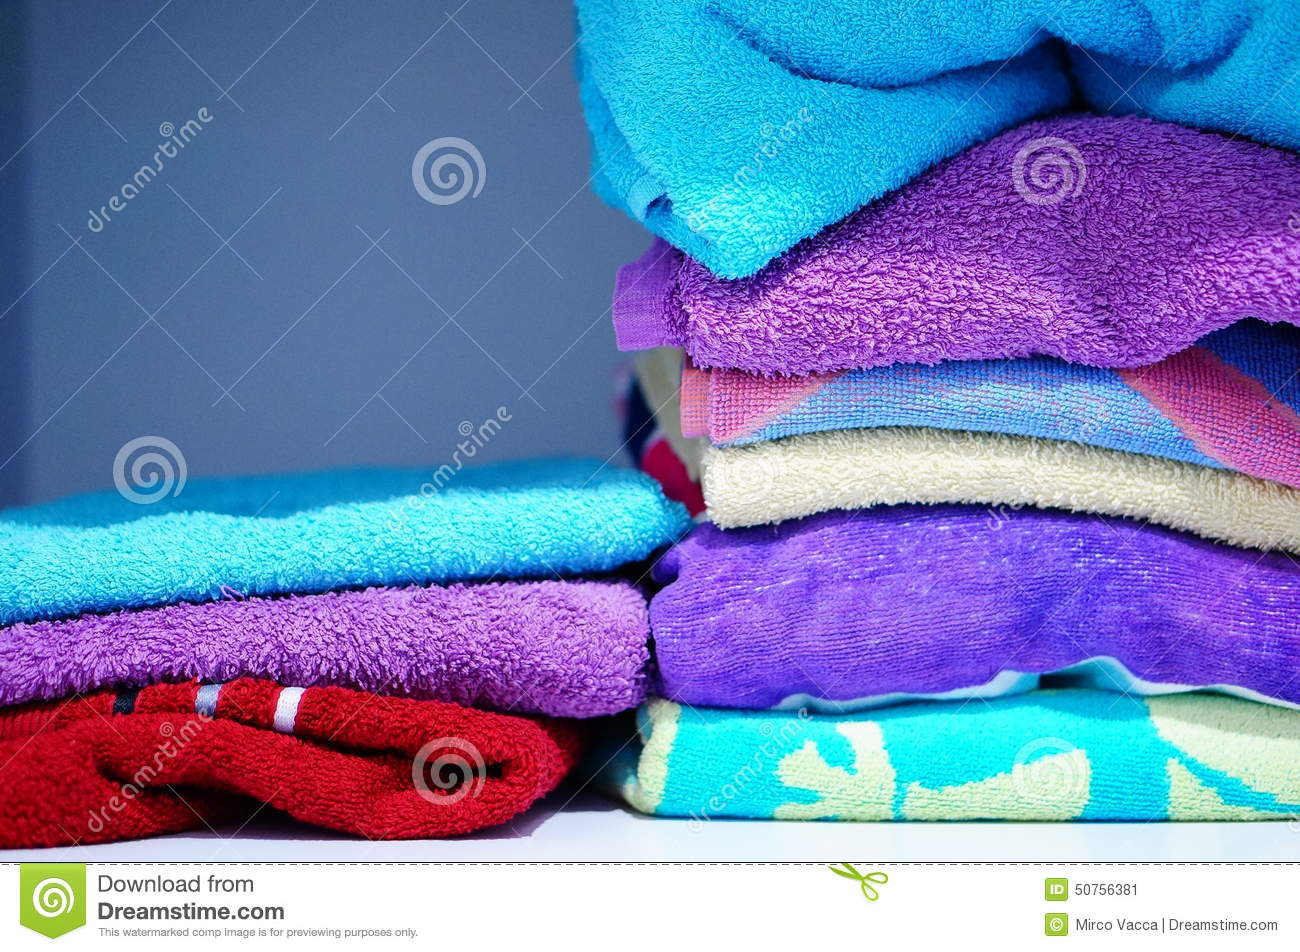 Stacked towels stock image. Image of shelf, stacked, towels - 50756381